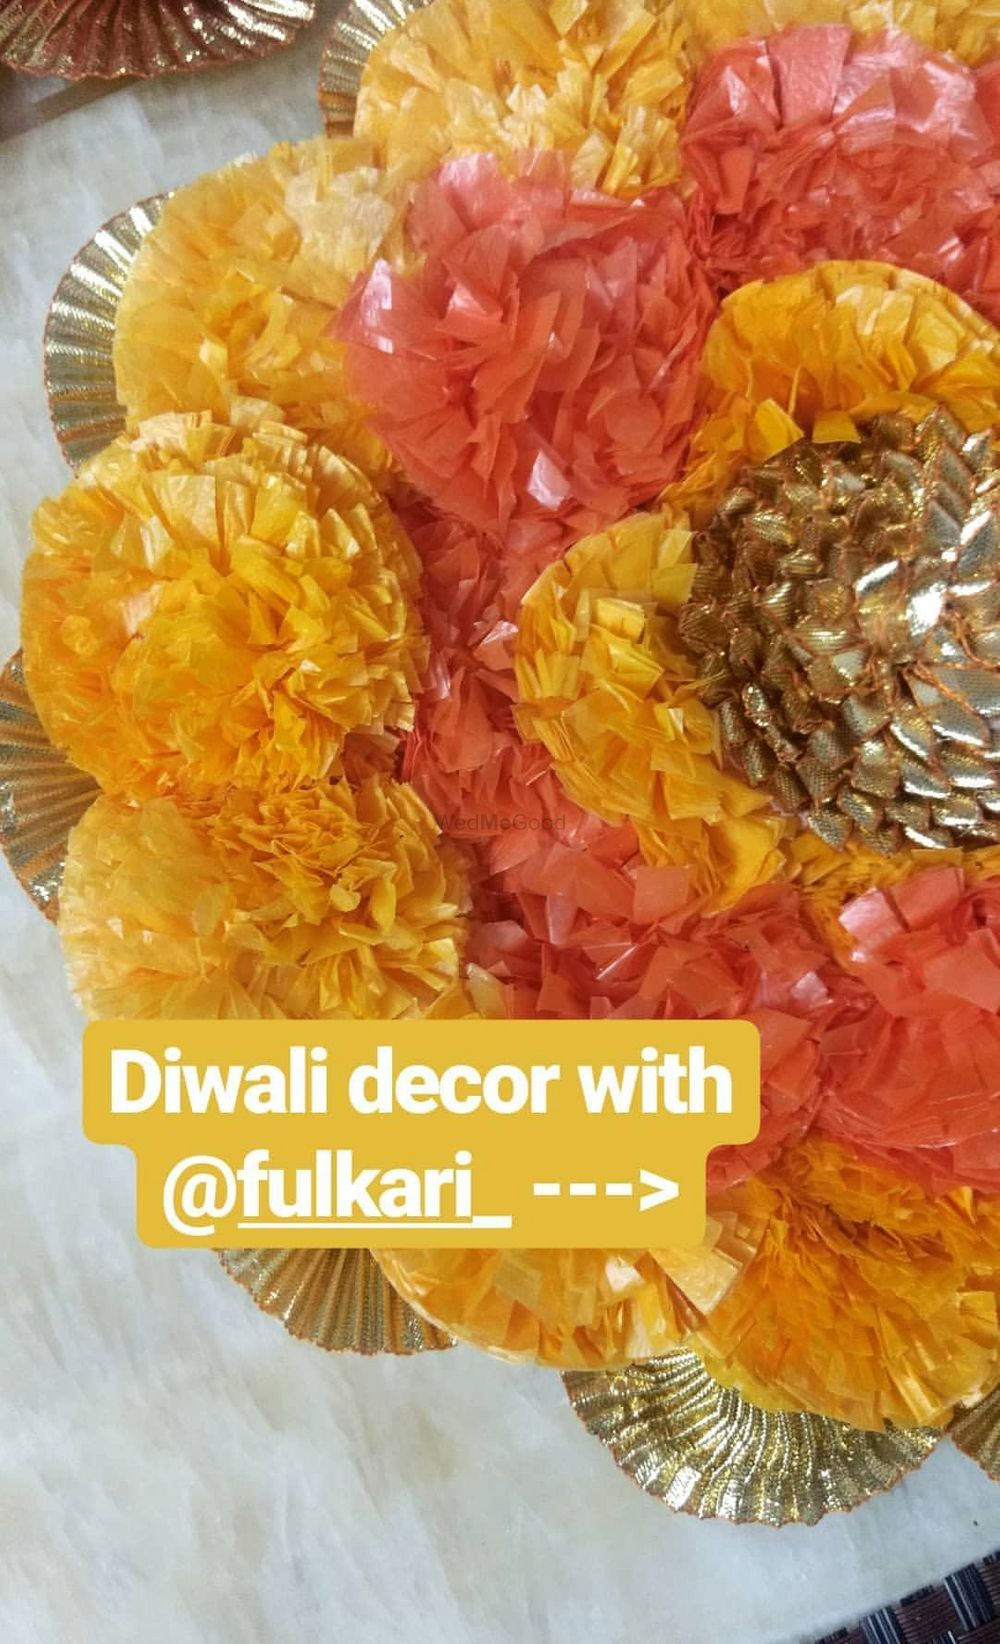 Photo From decor - By Fulkari